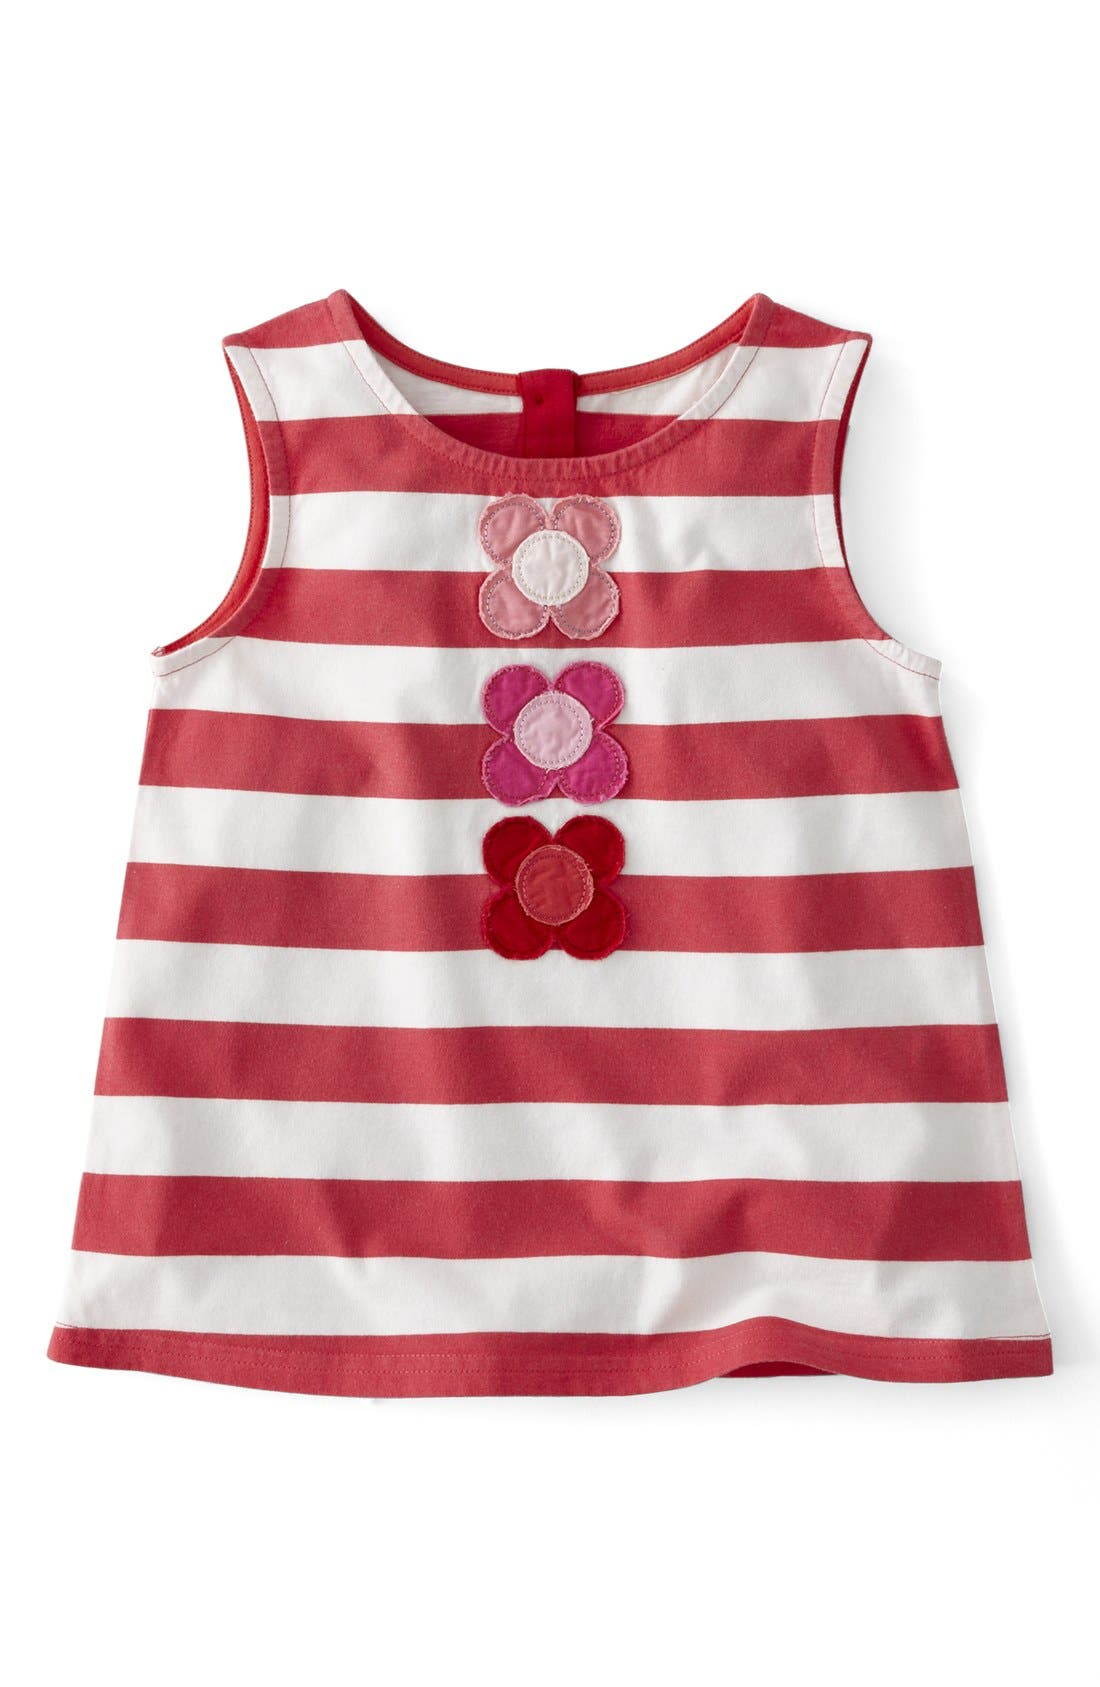 Alternate Image 1 Selected - Mini Boden 'Fab Flower' A-Line Sleeveless Top (Toddler Girls, Little Girls & Big Girls)